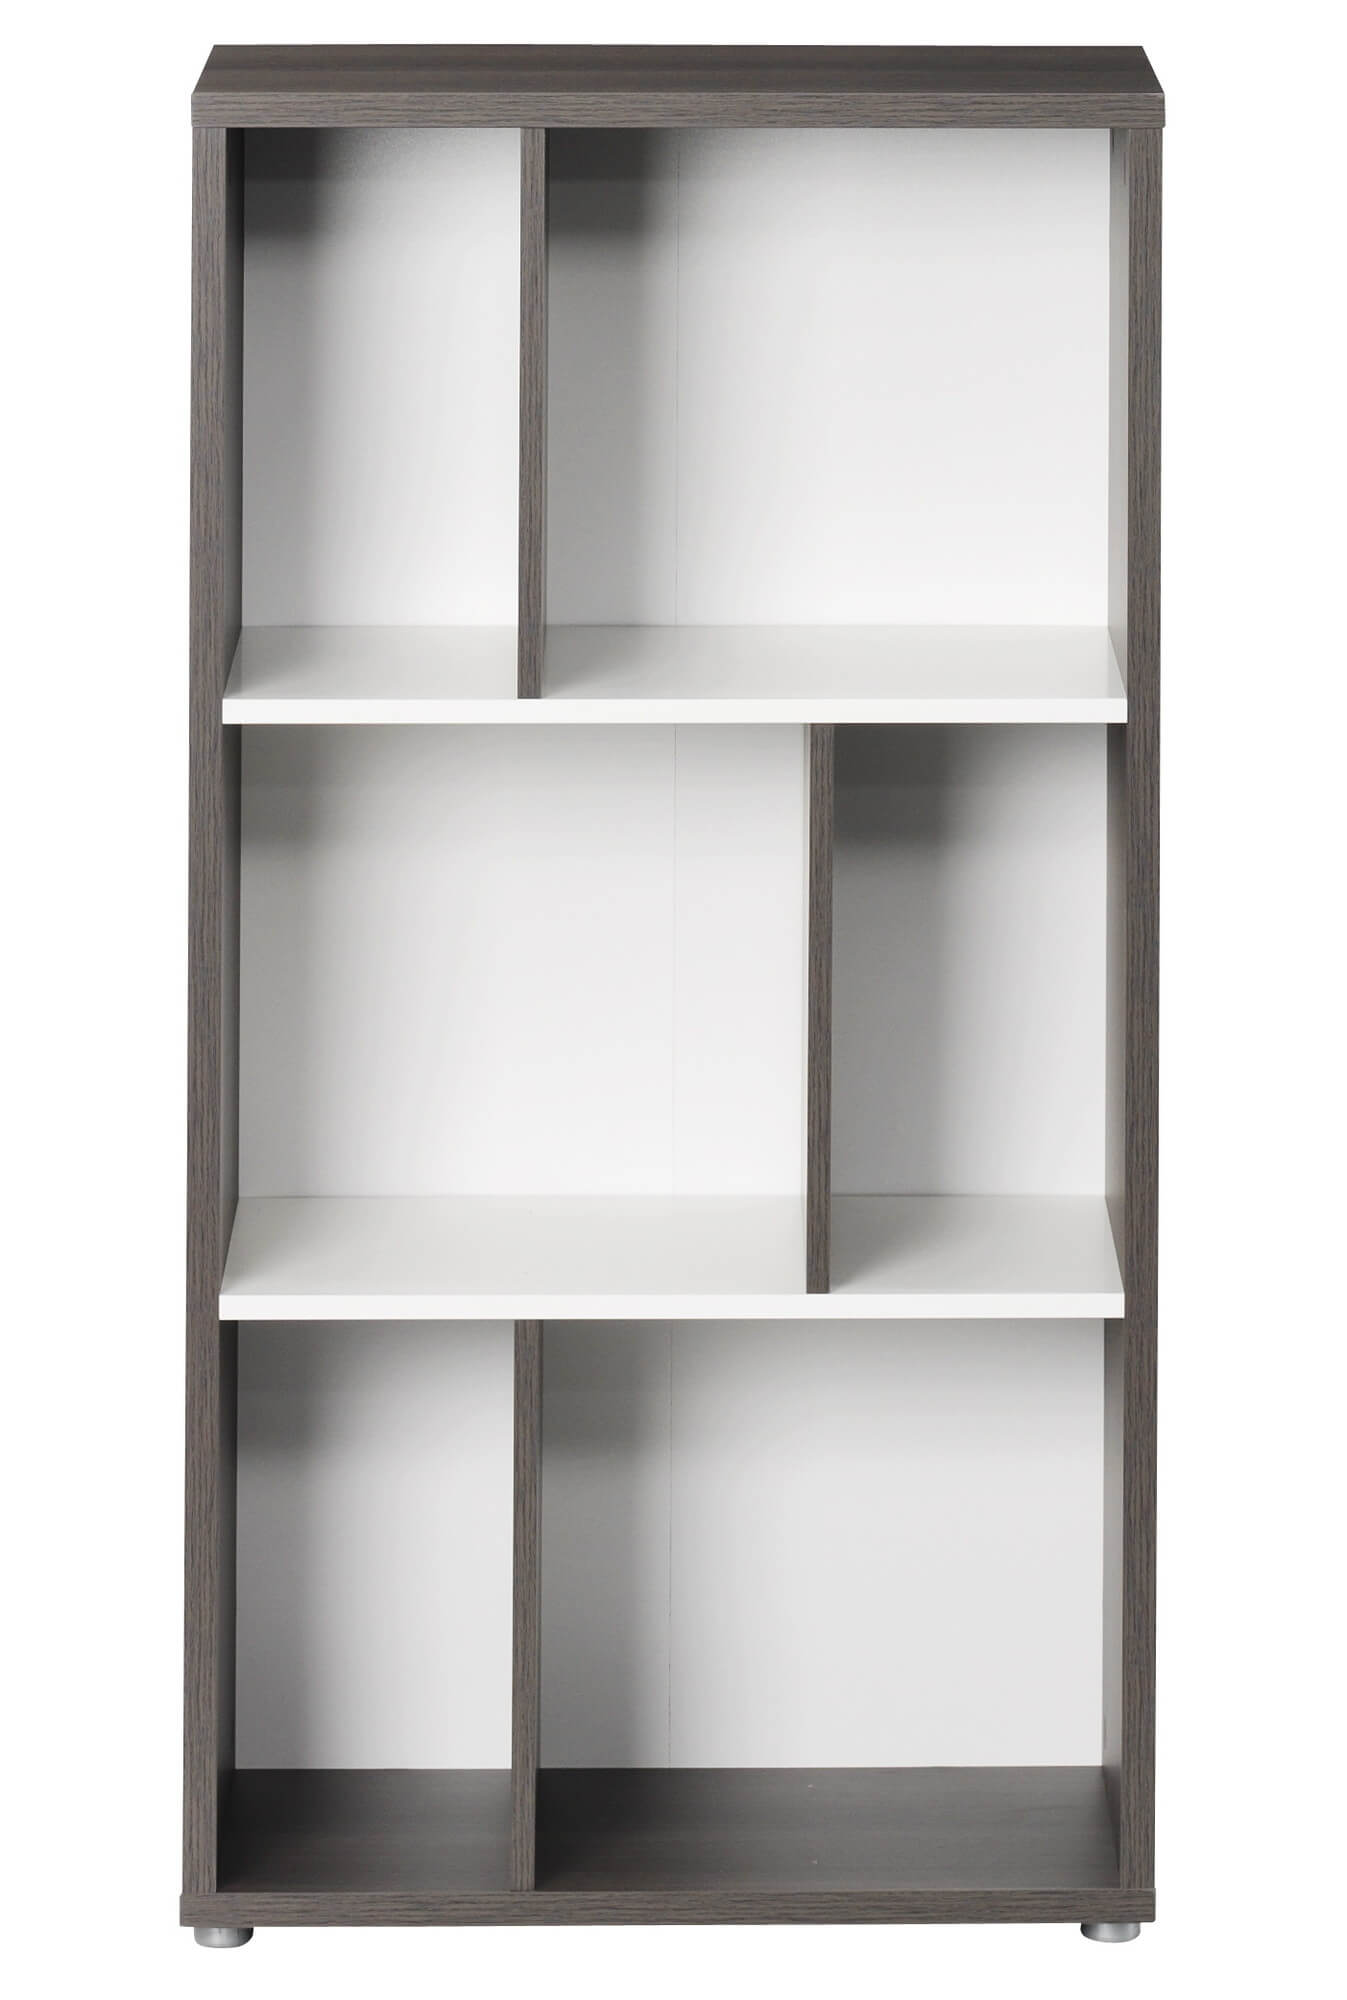 This is a taller than usual 6 cube shelving unit with large/tall storage sections. The entire unit includes a back.